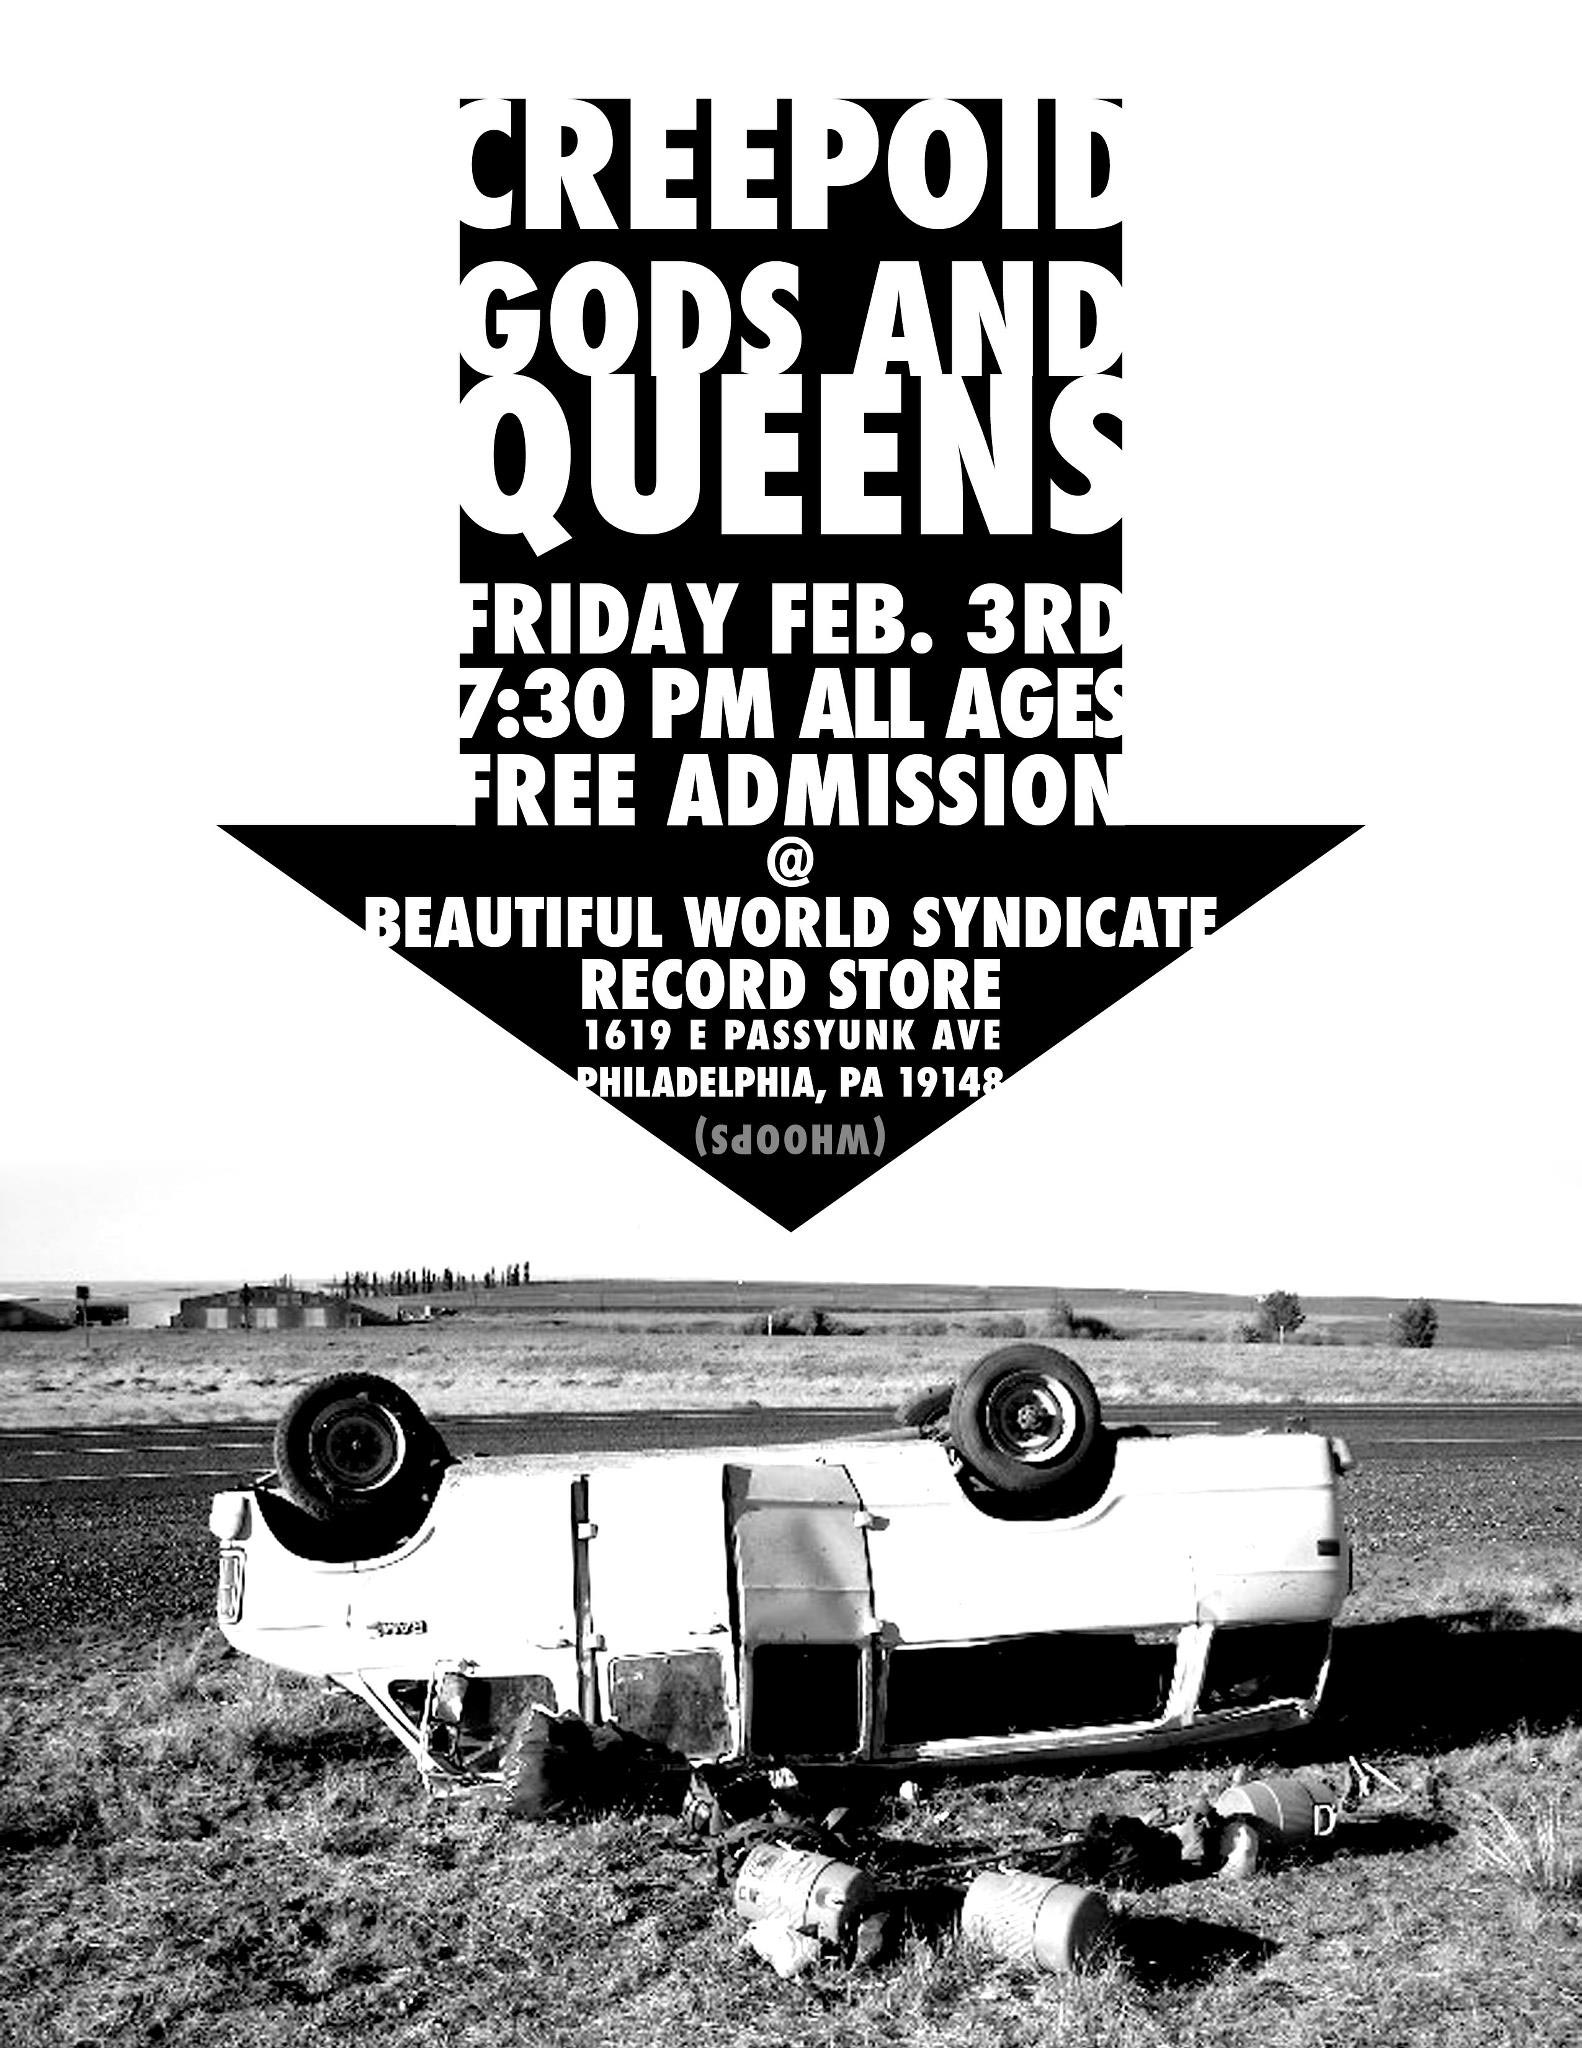 Gods and Queens - Van Flyer with Creepoid